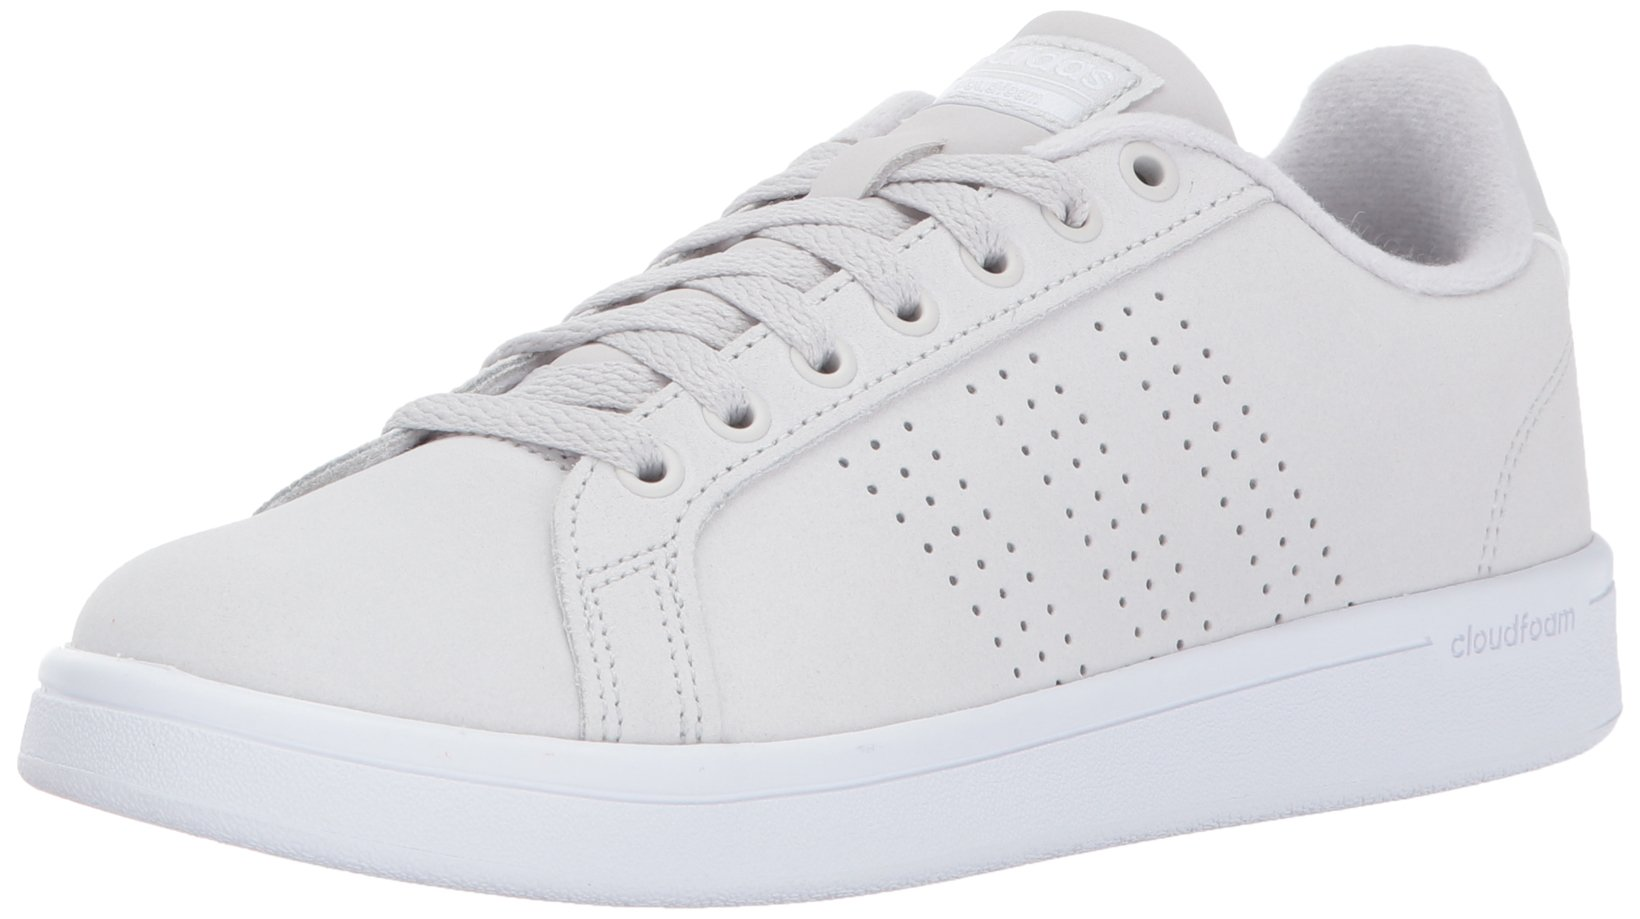 Galleon Adidas Women's Cloudfoam Advantage Clean Sneakers